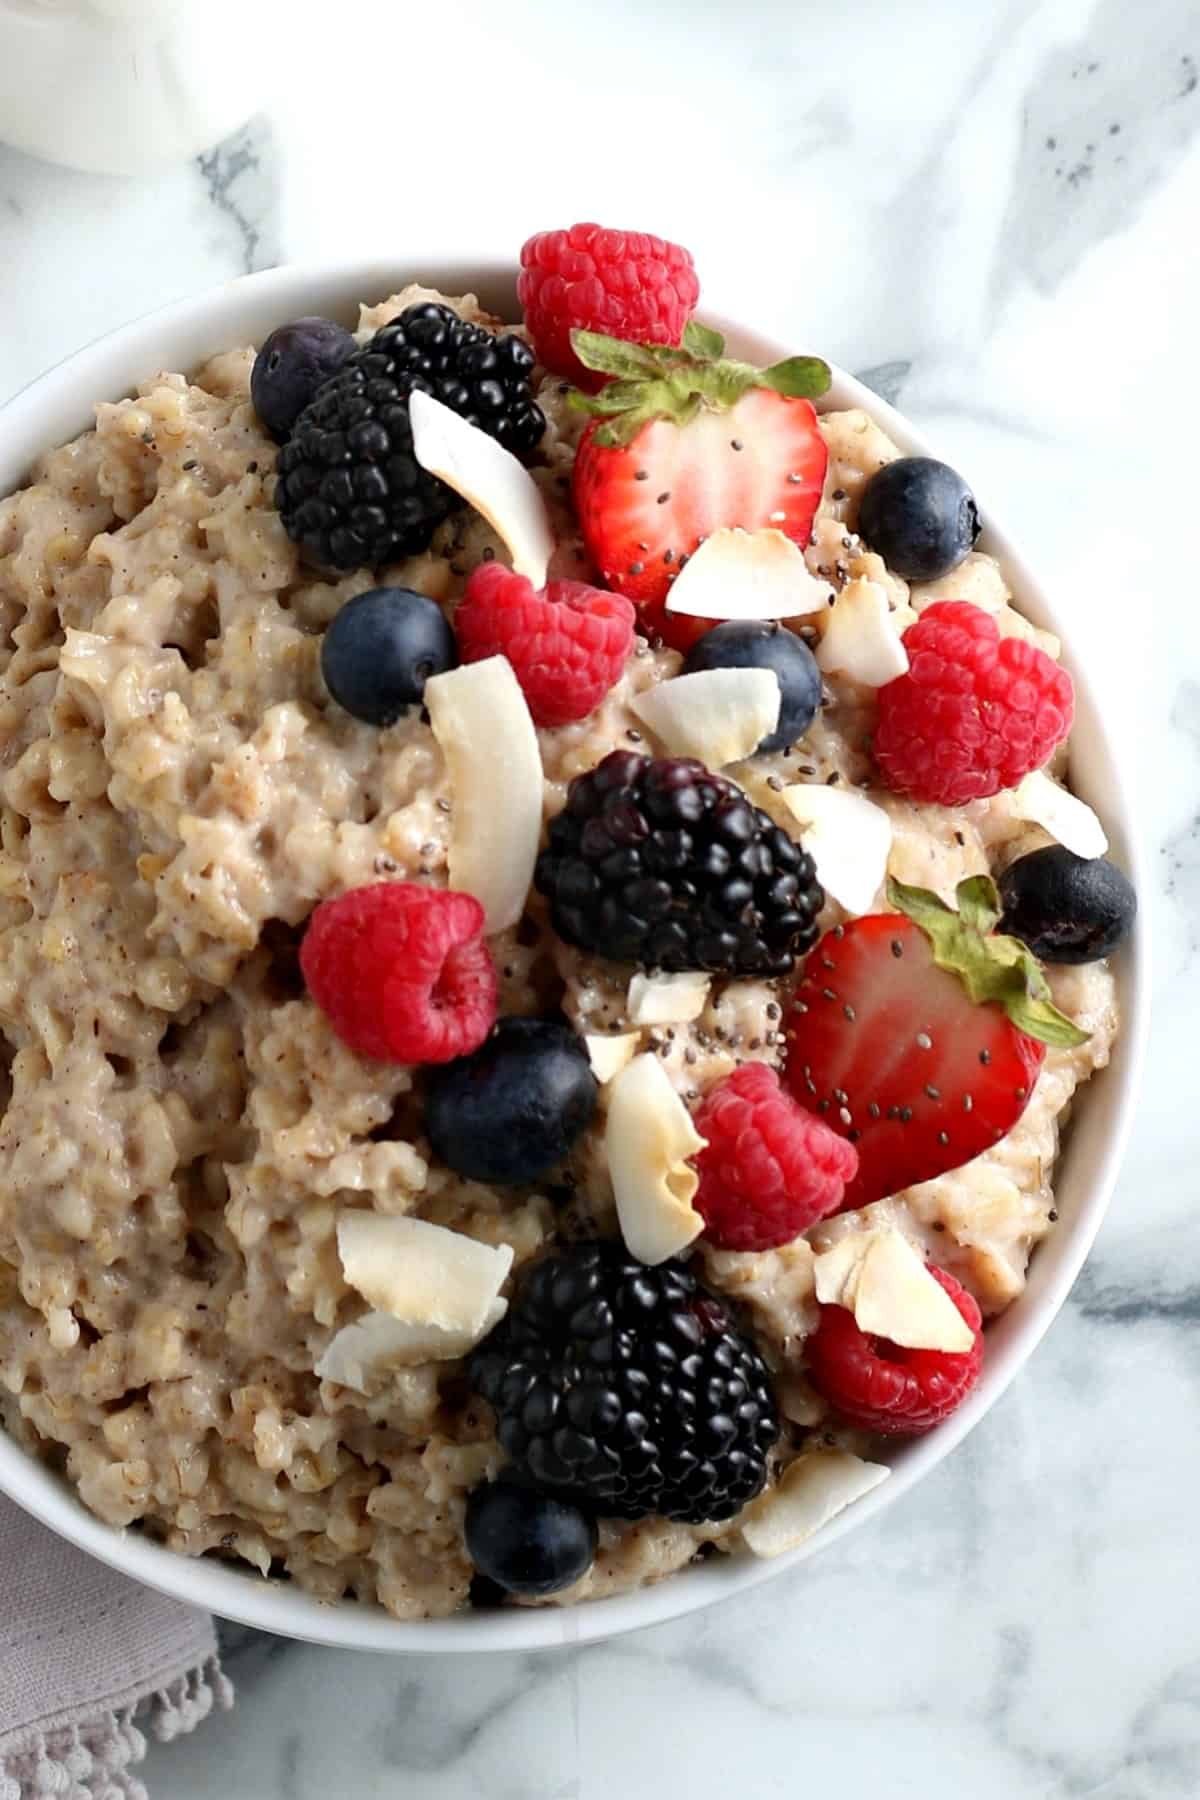 Overhead closeup of a cropped white bowl of oatmeal scattered with colorful berries.